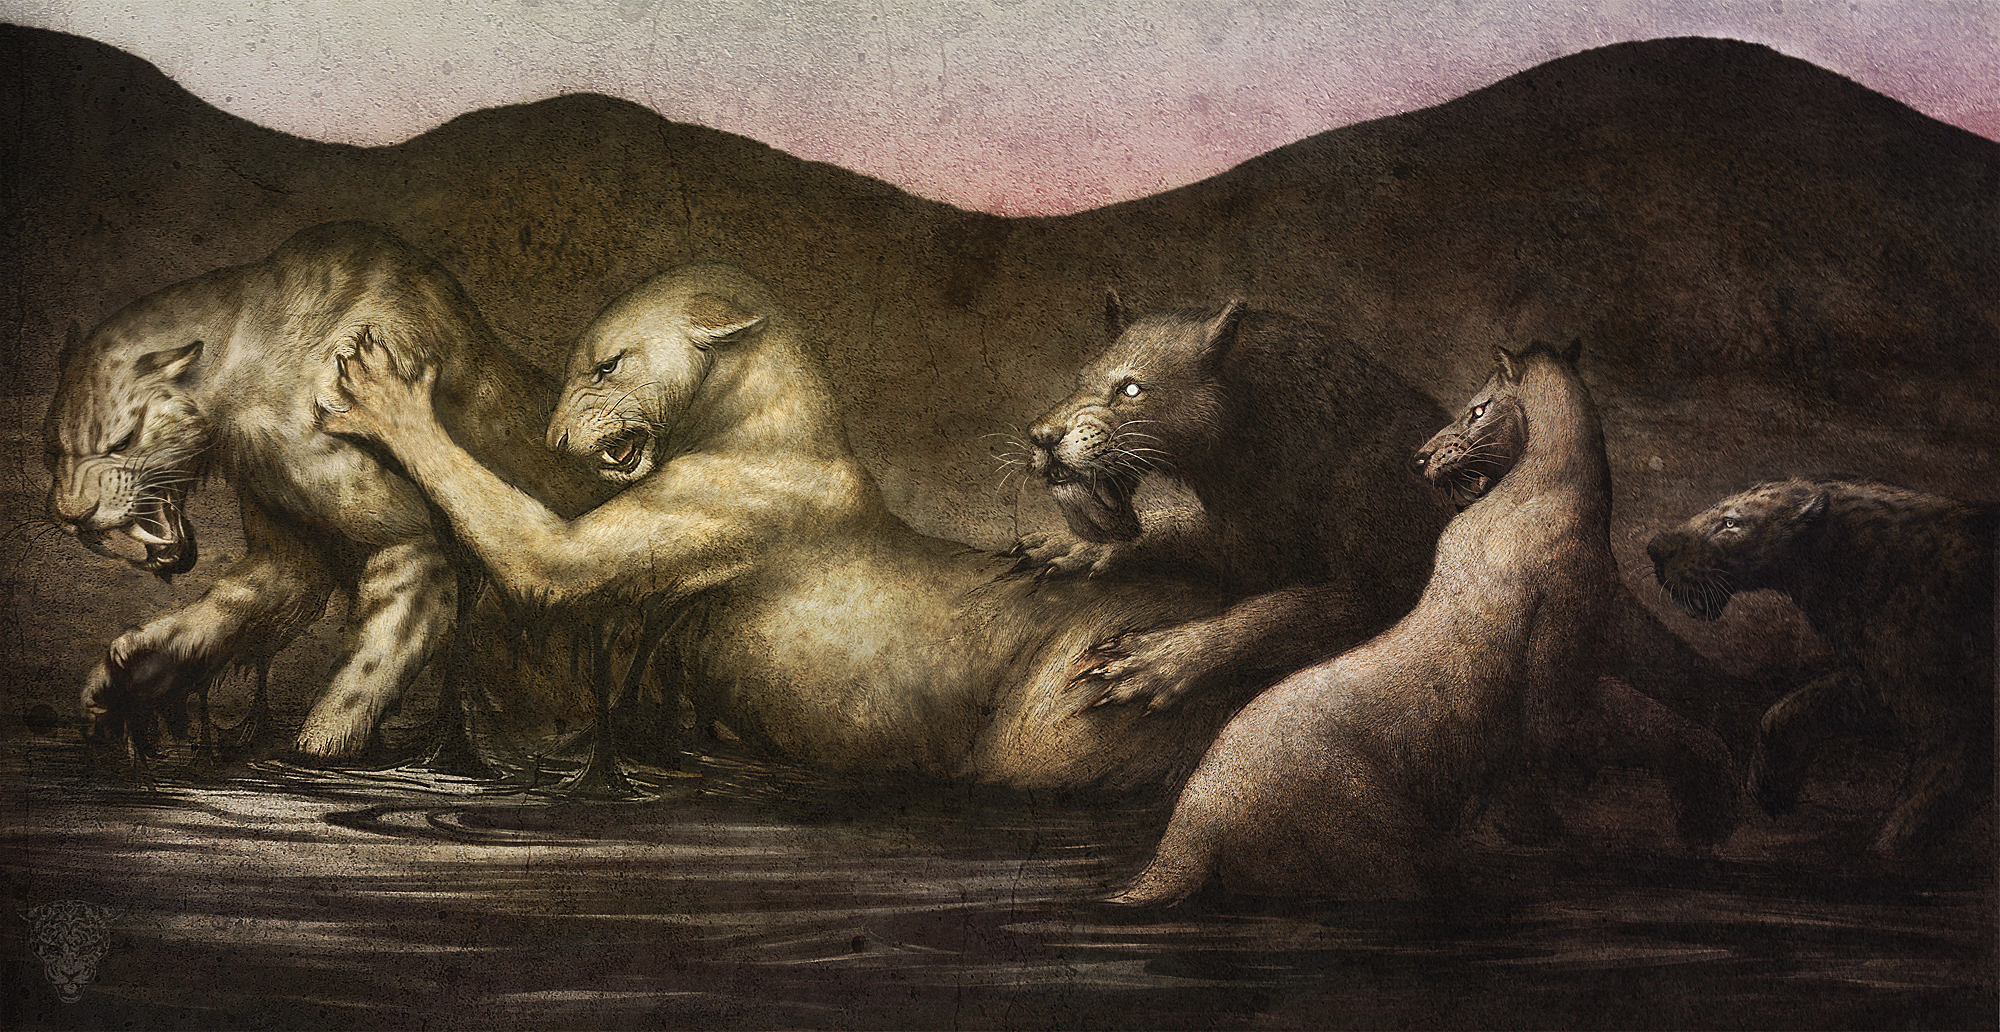 SABERTOOTHS– Graphite and digital texture. A compilation of sabertooth predators from left to right:  Smilodon ,  Panthera atrox ,  Barbourofelis ,  Homotherium  and  Xenosmilus .